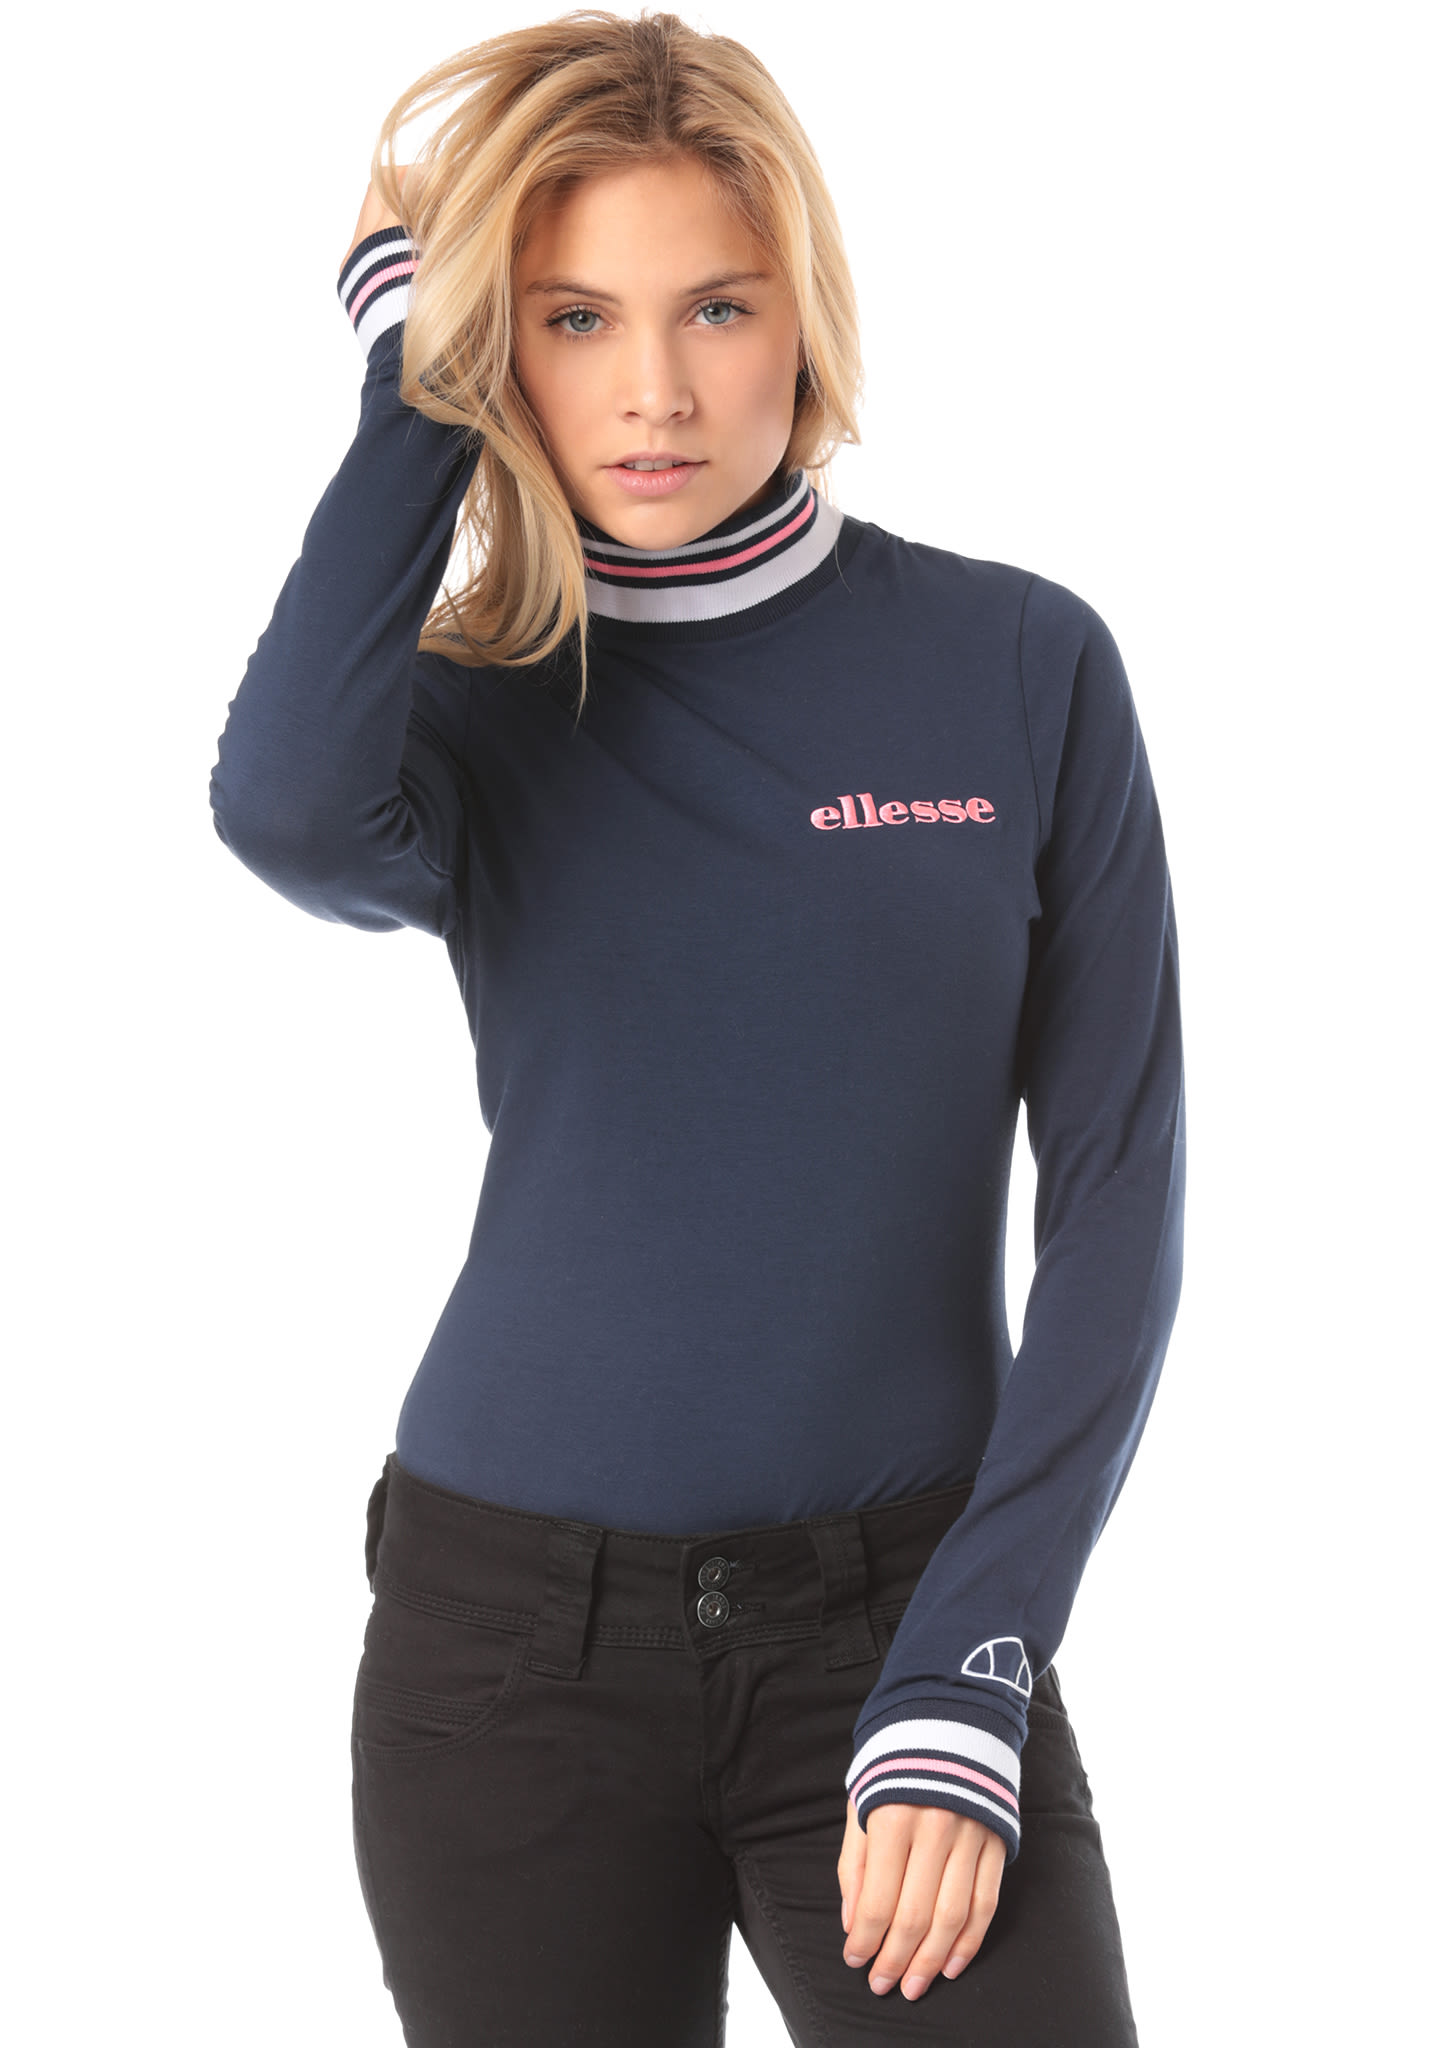 75fb81d016 ELLESSE Amaro Body - Long-sleeved Shirt for Women - Blue - Planet Sports